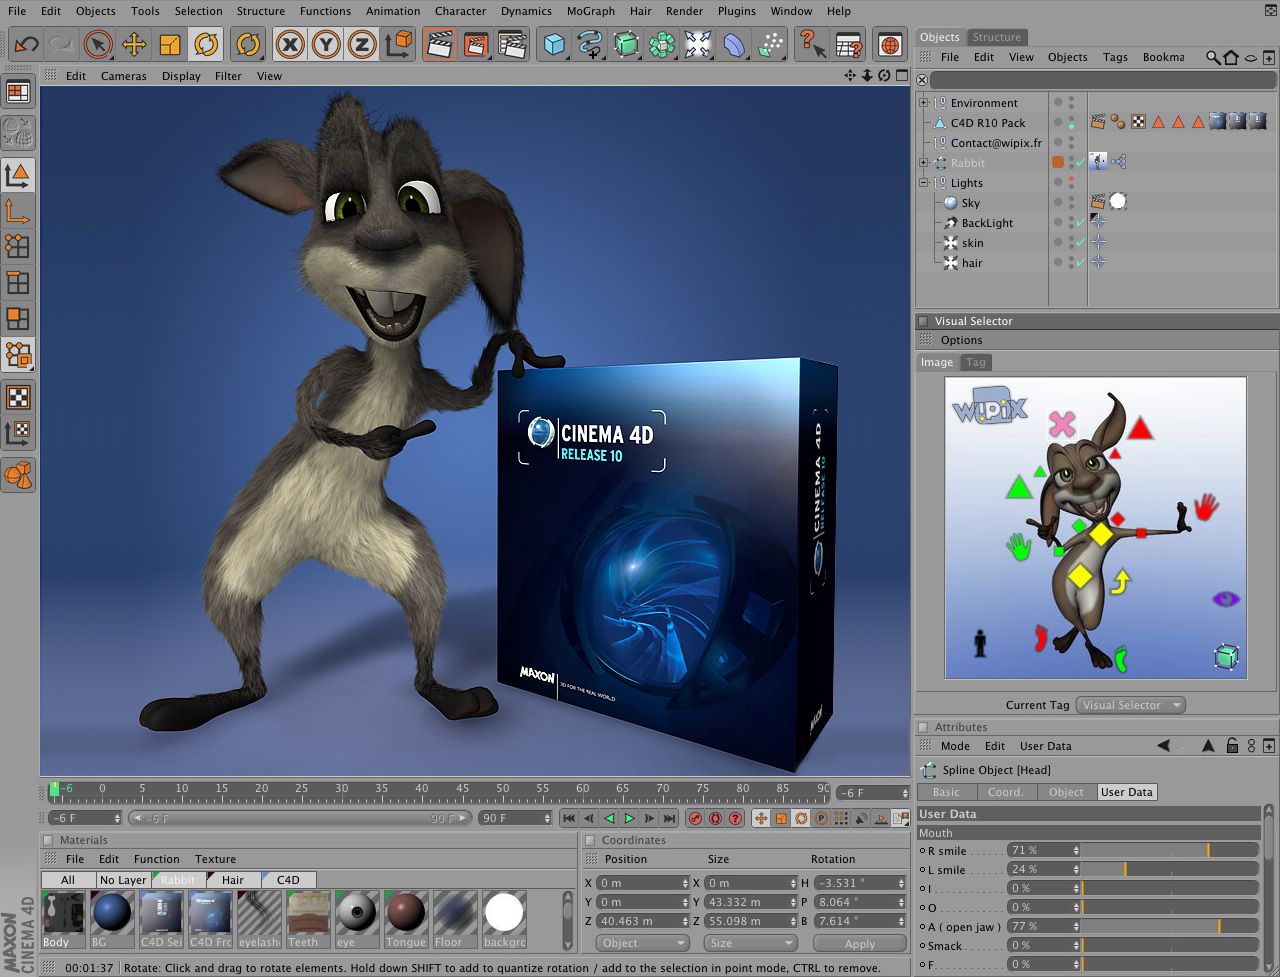 cinema 4d r15 free download windows